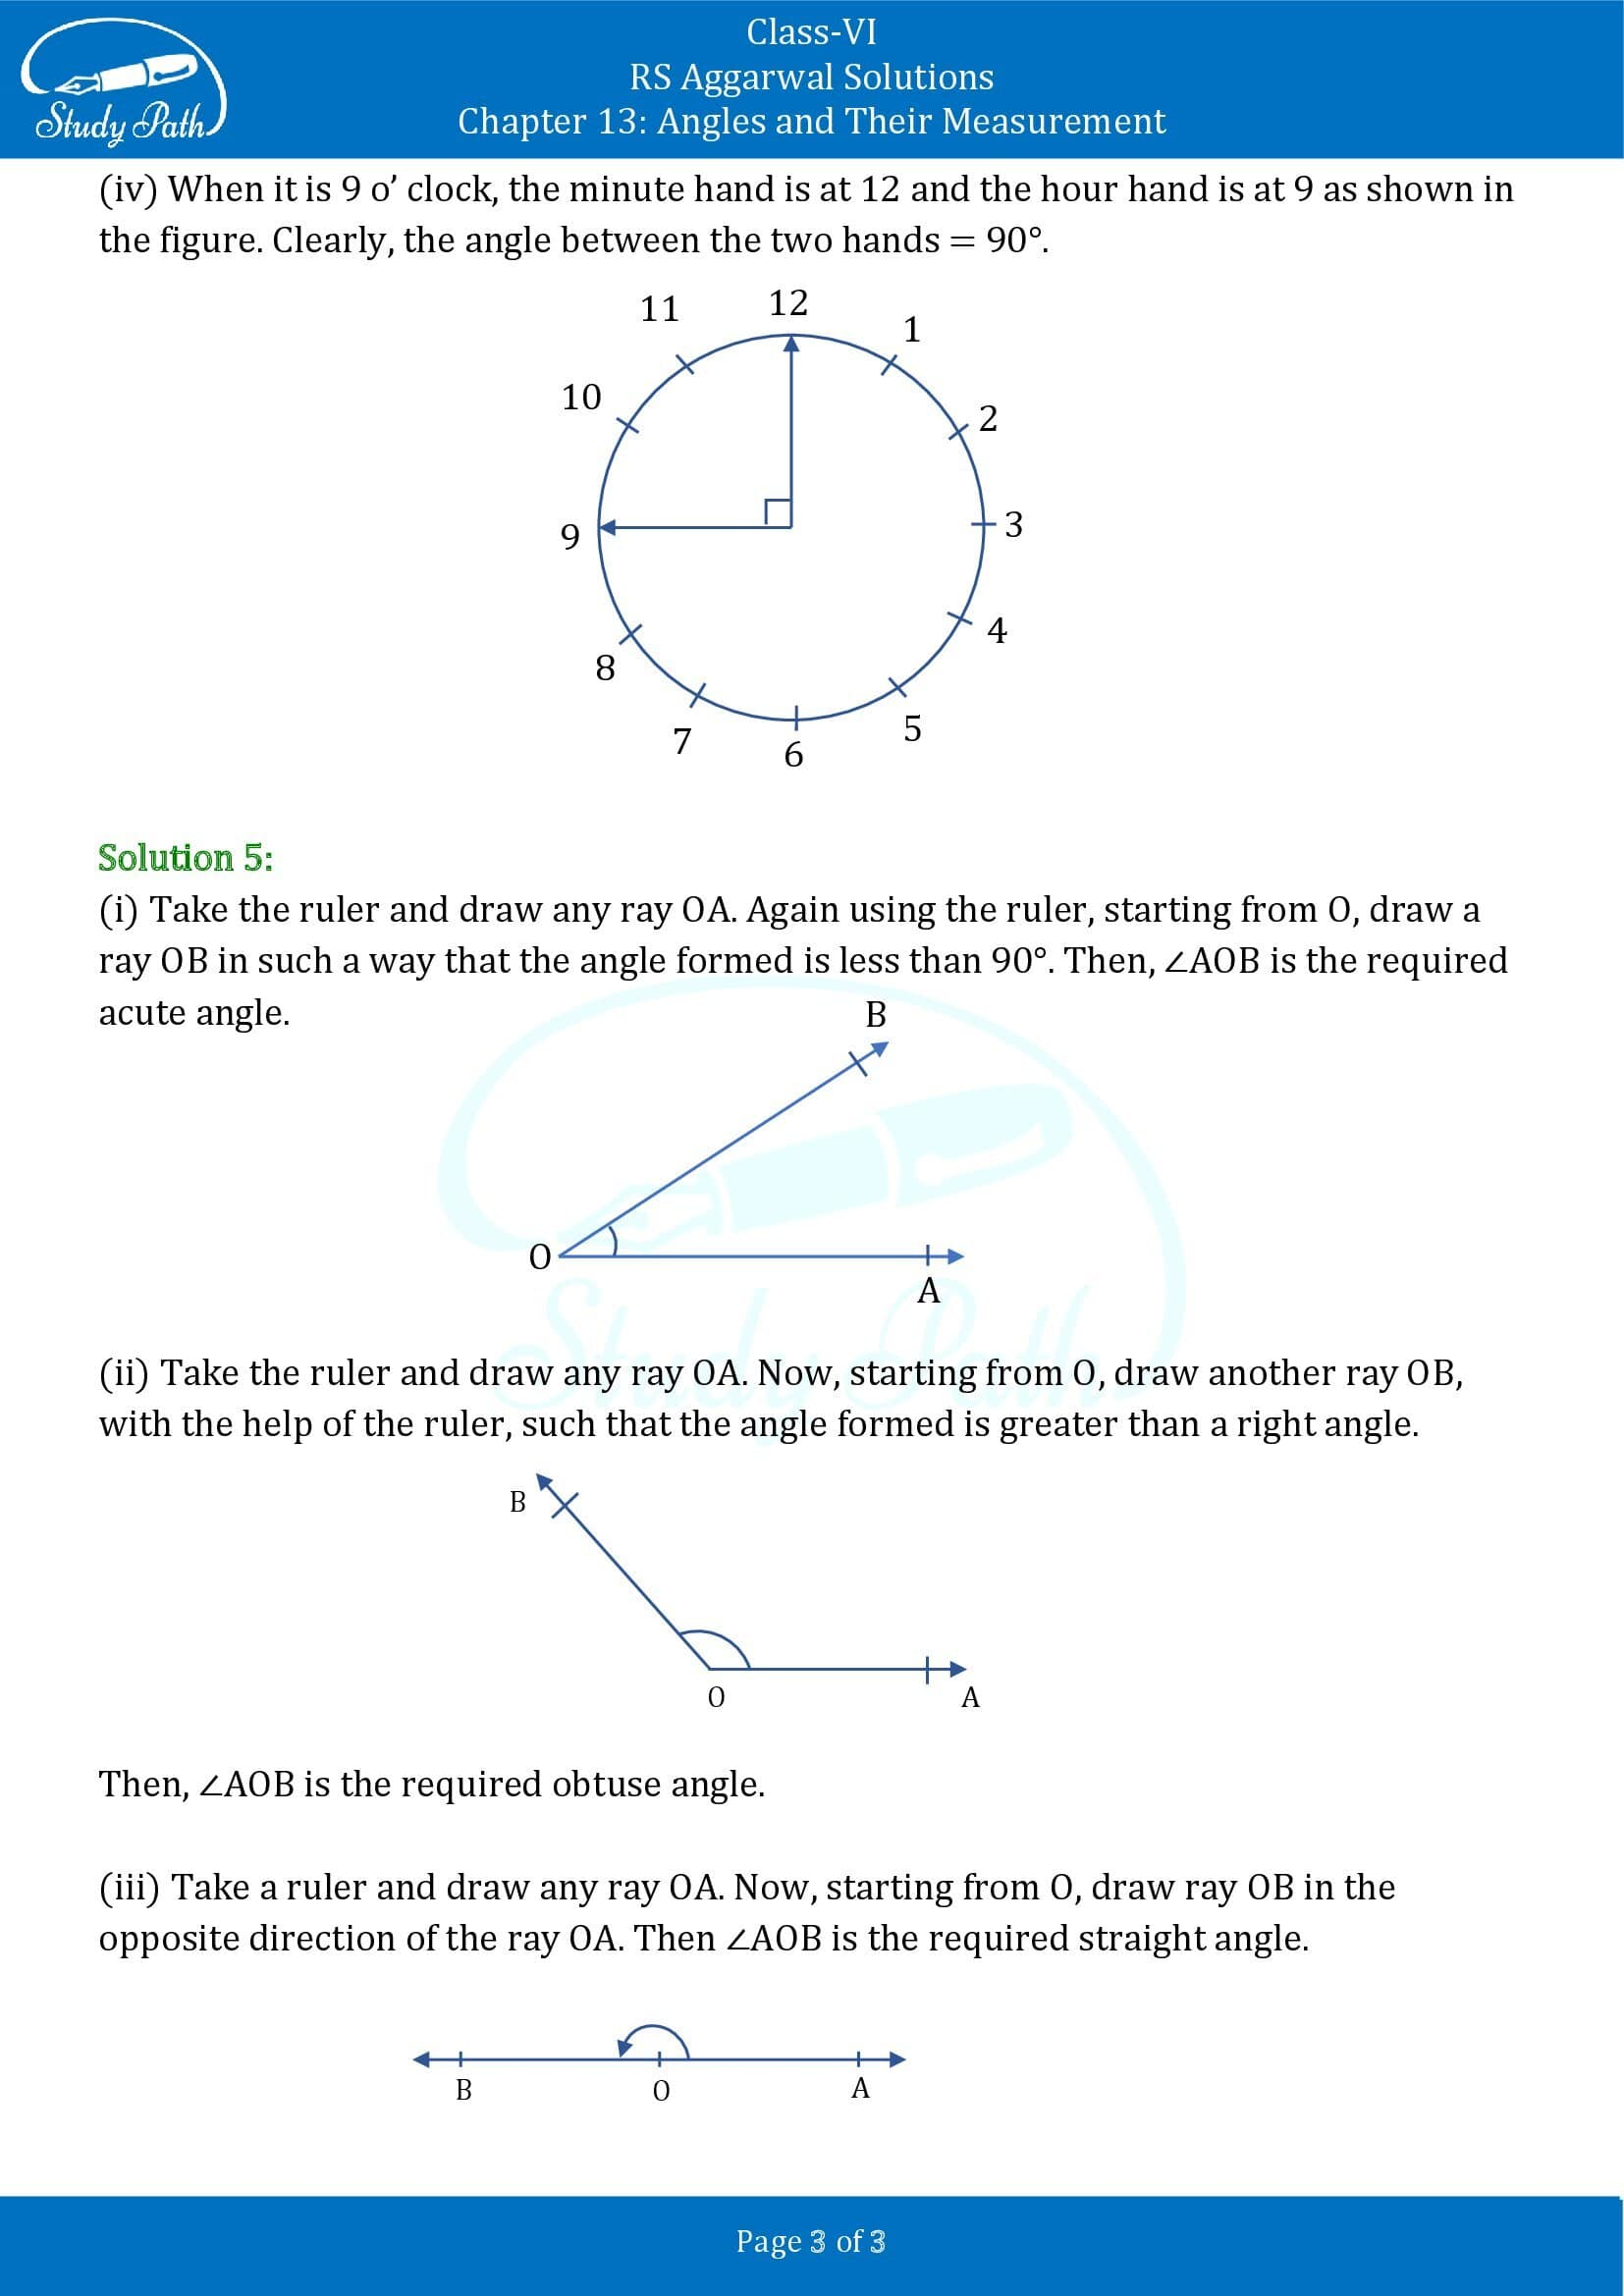 RS Aggarwal Solutions Class 6 Chapter 13 Angles and Their Measurement Exercise 13B 00003